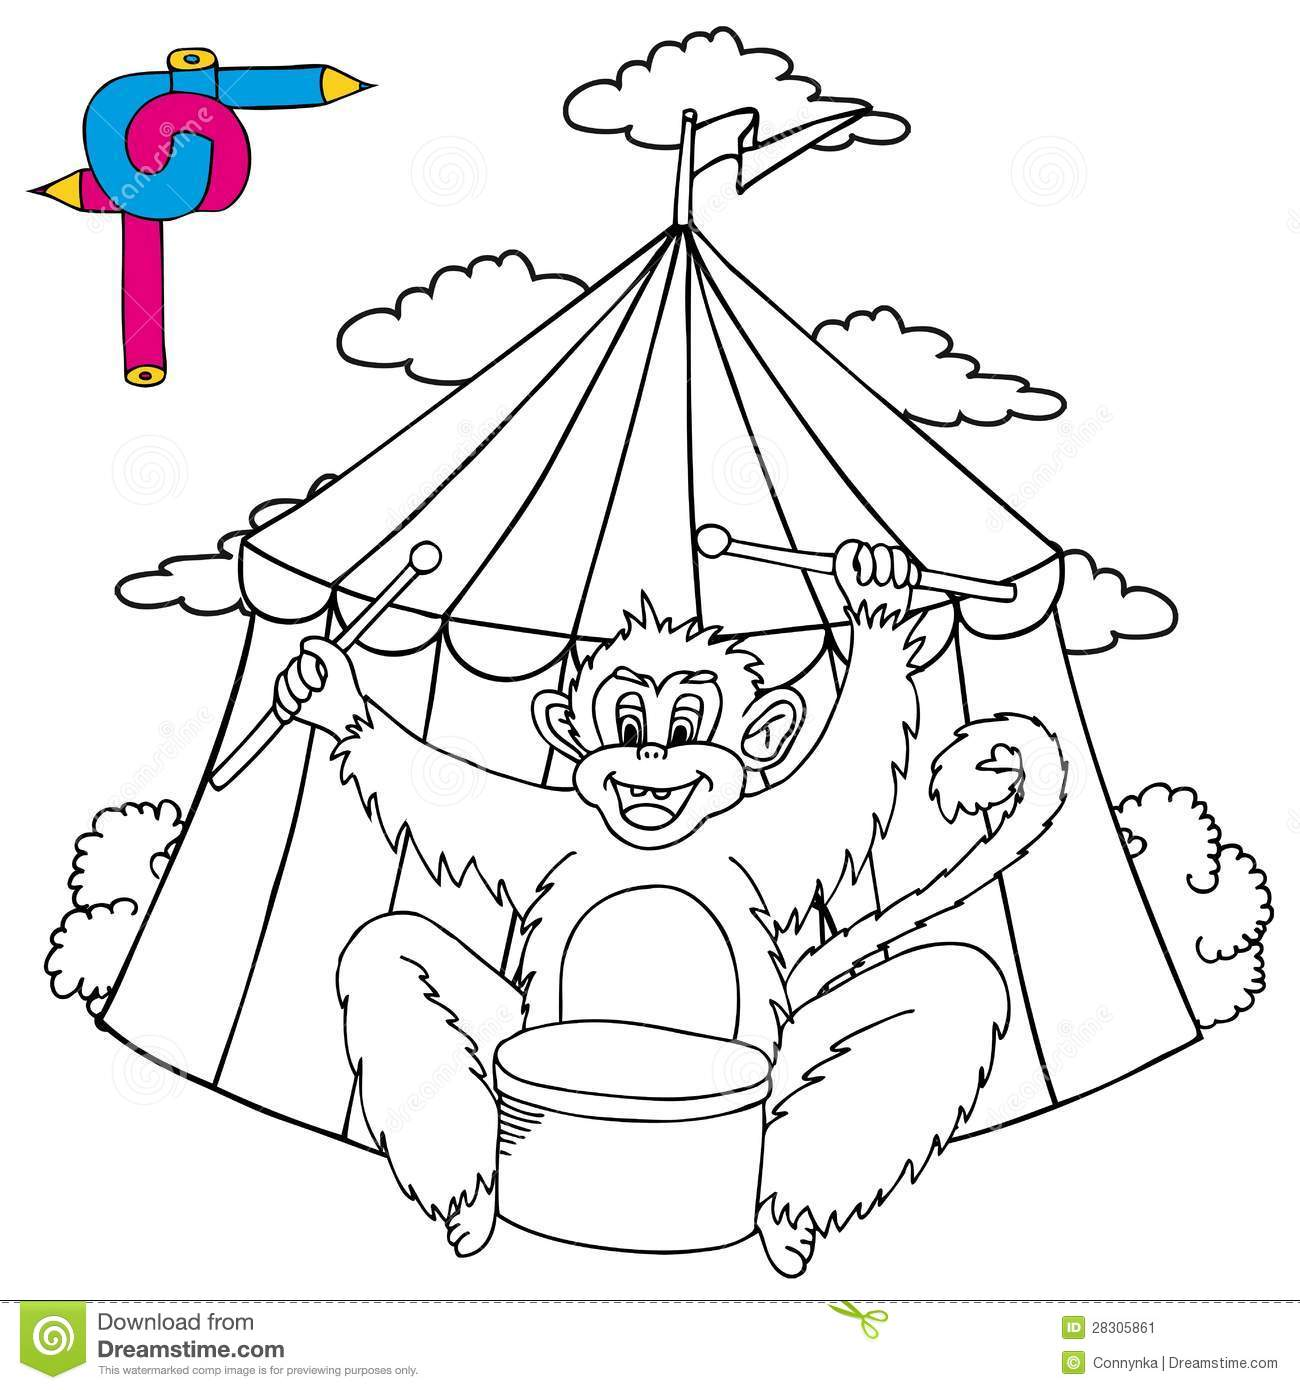 carnival monkey coloring pages - photo#31